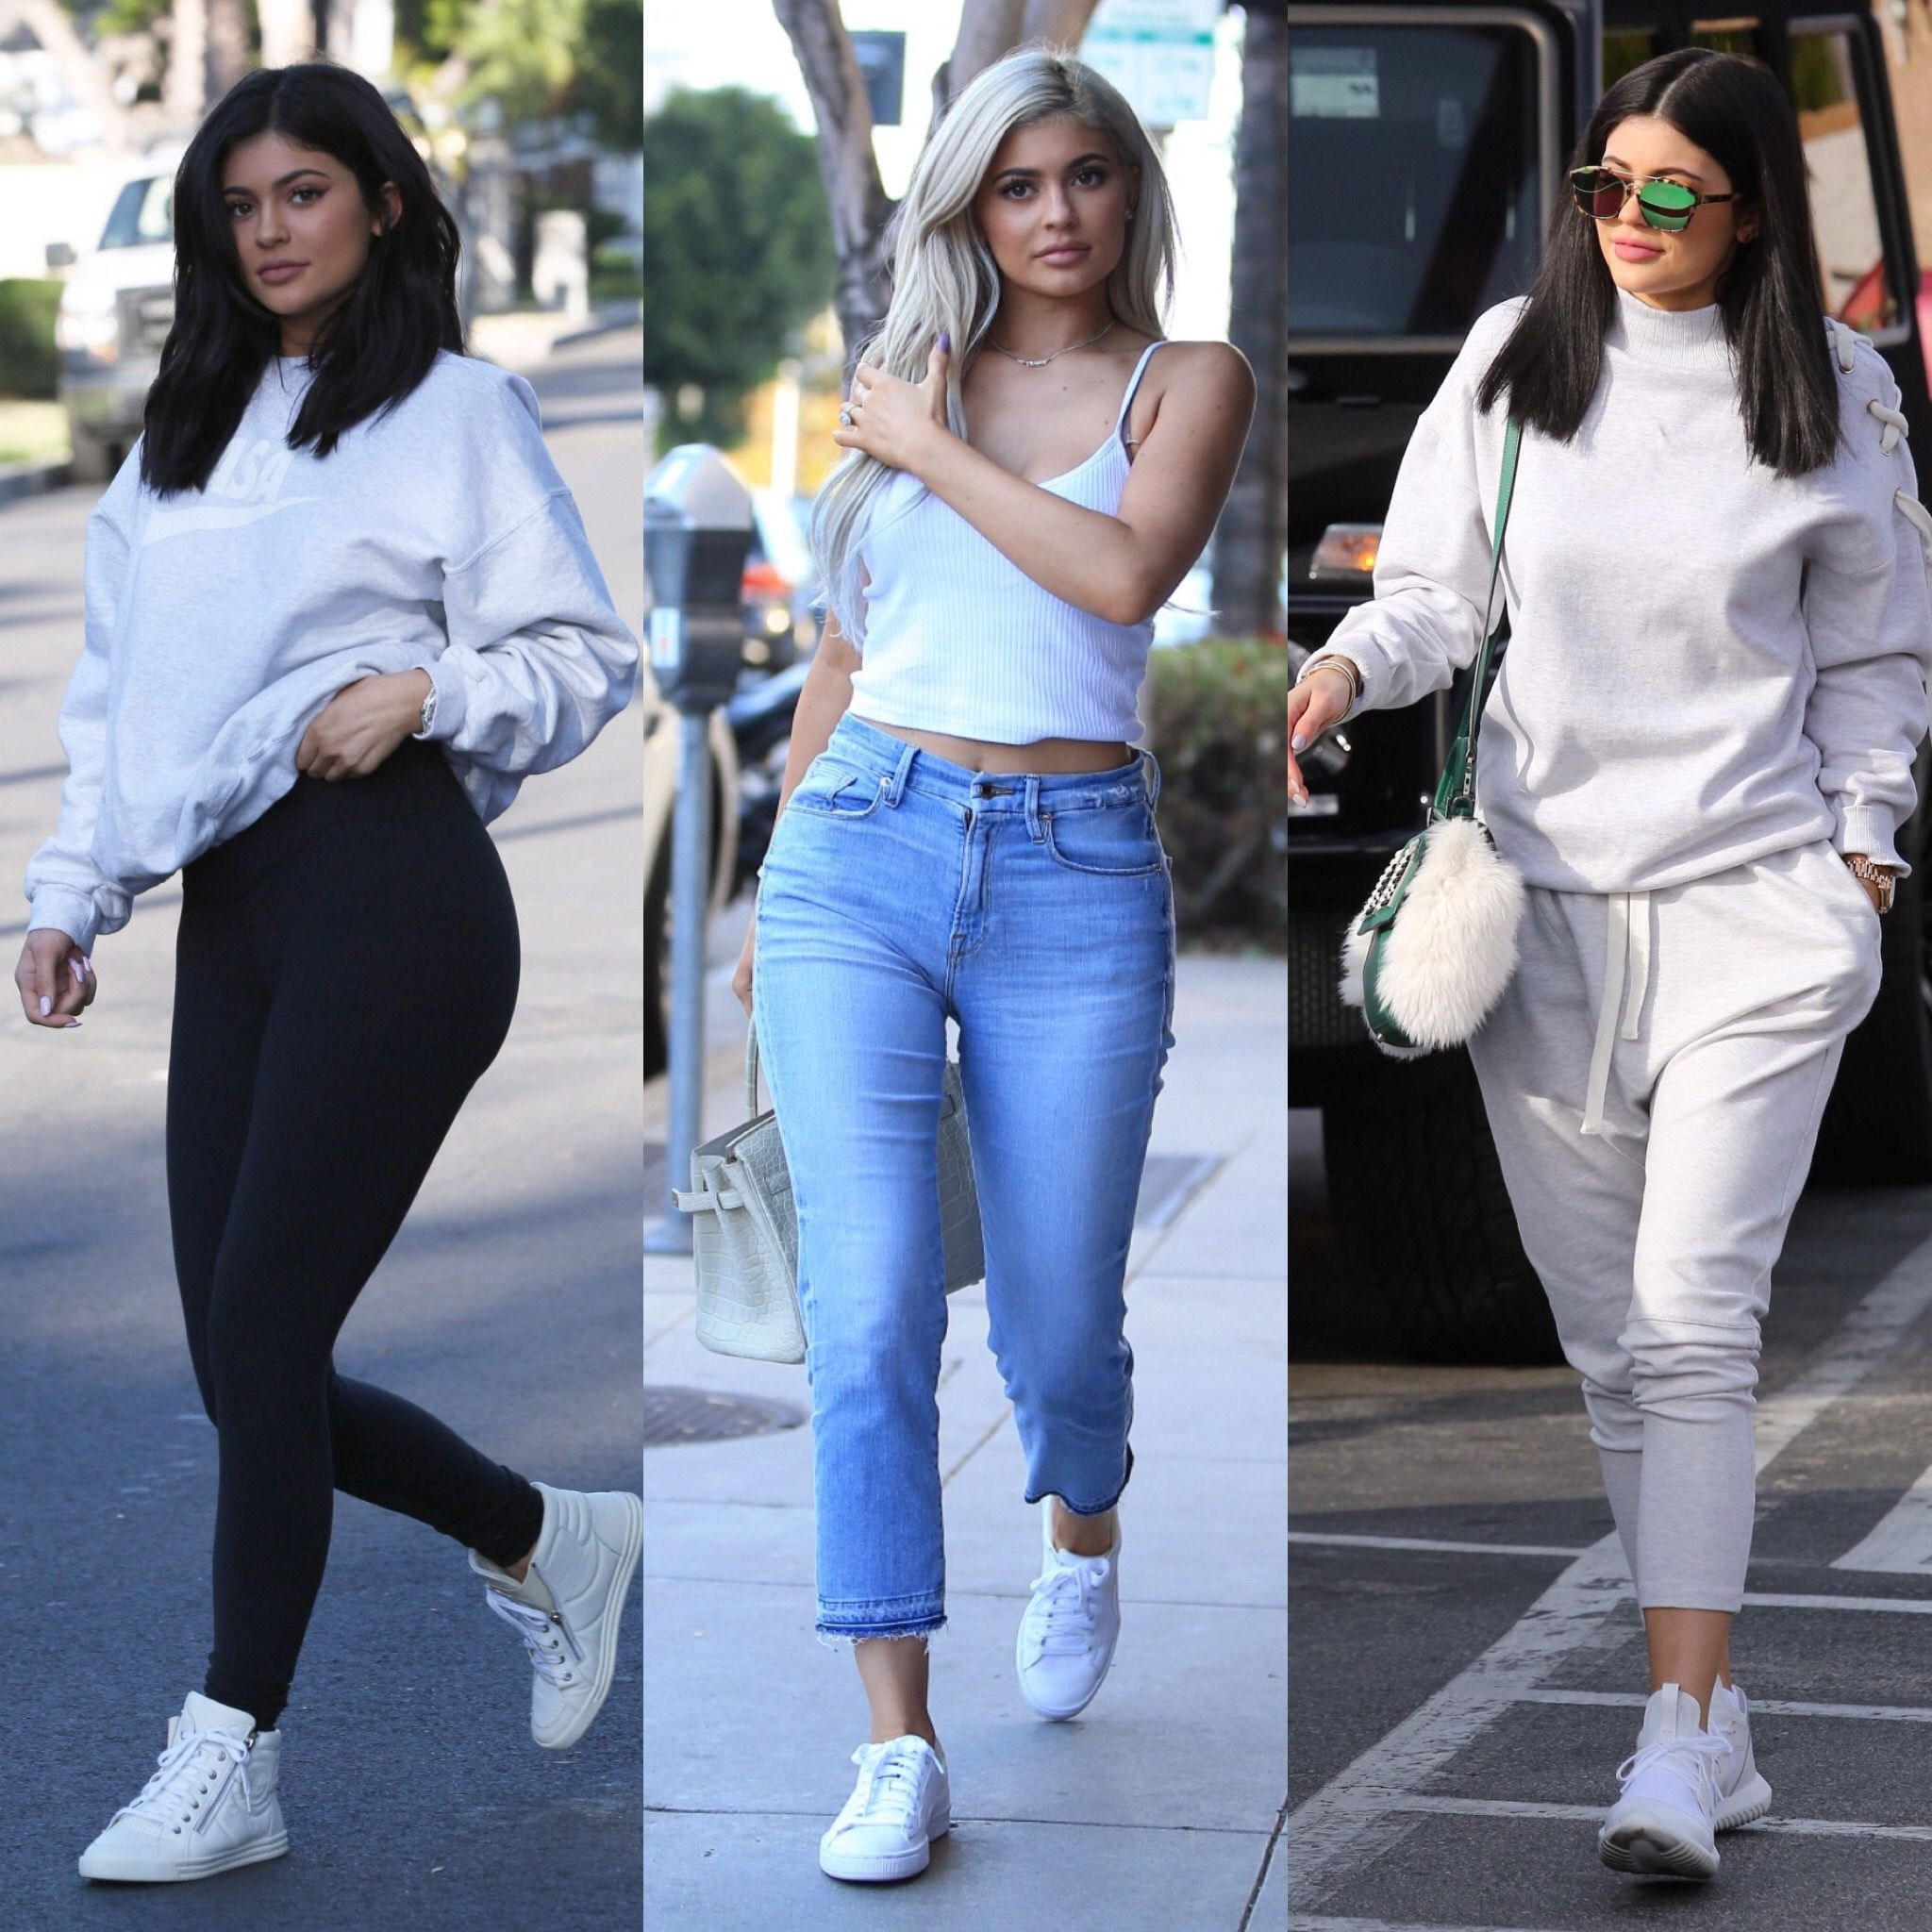 kylie jenner outfits style white outfits kylie jenner streetstyle kylie jenner blonde kylie jenner brunette kylie